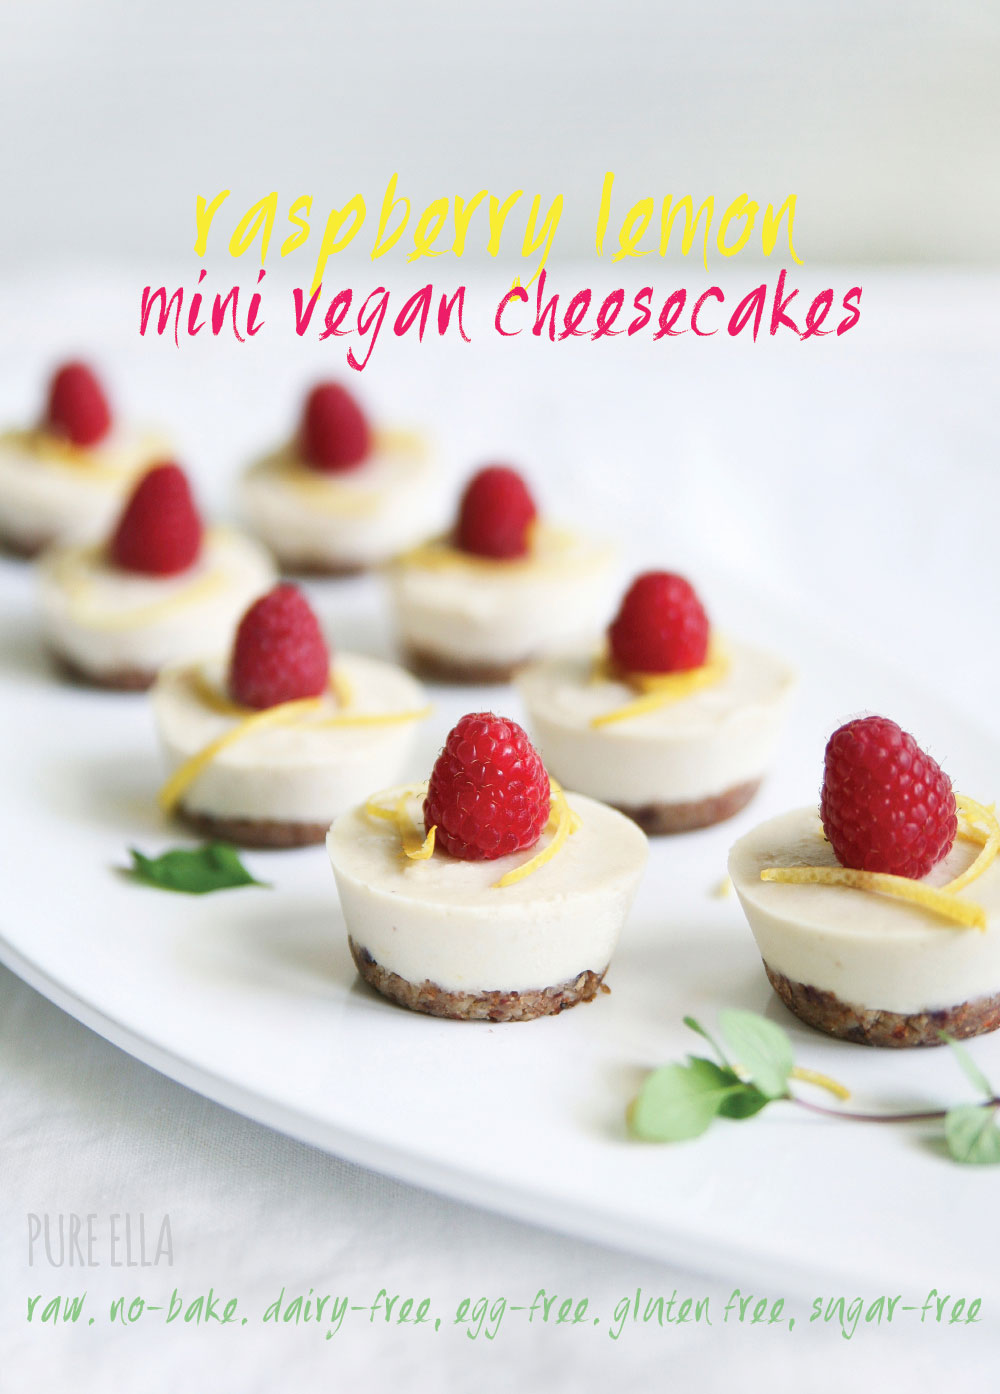 Pure ella raw raspberry lemon raw vegan cheesecakes